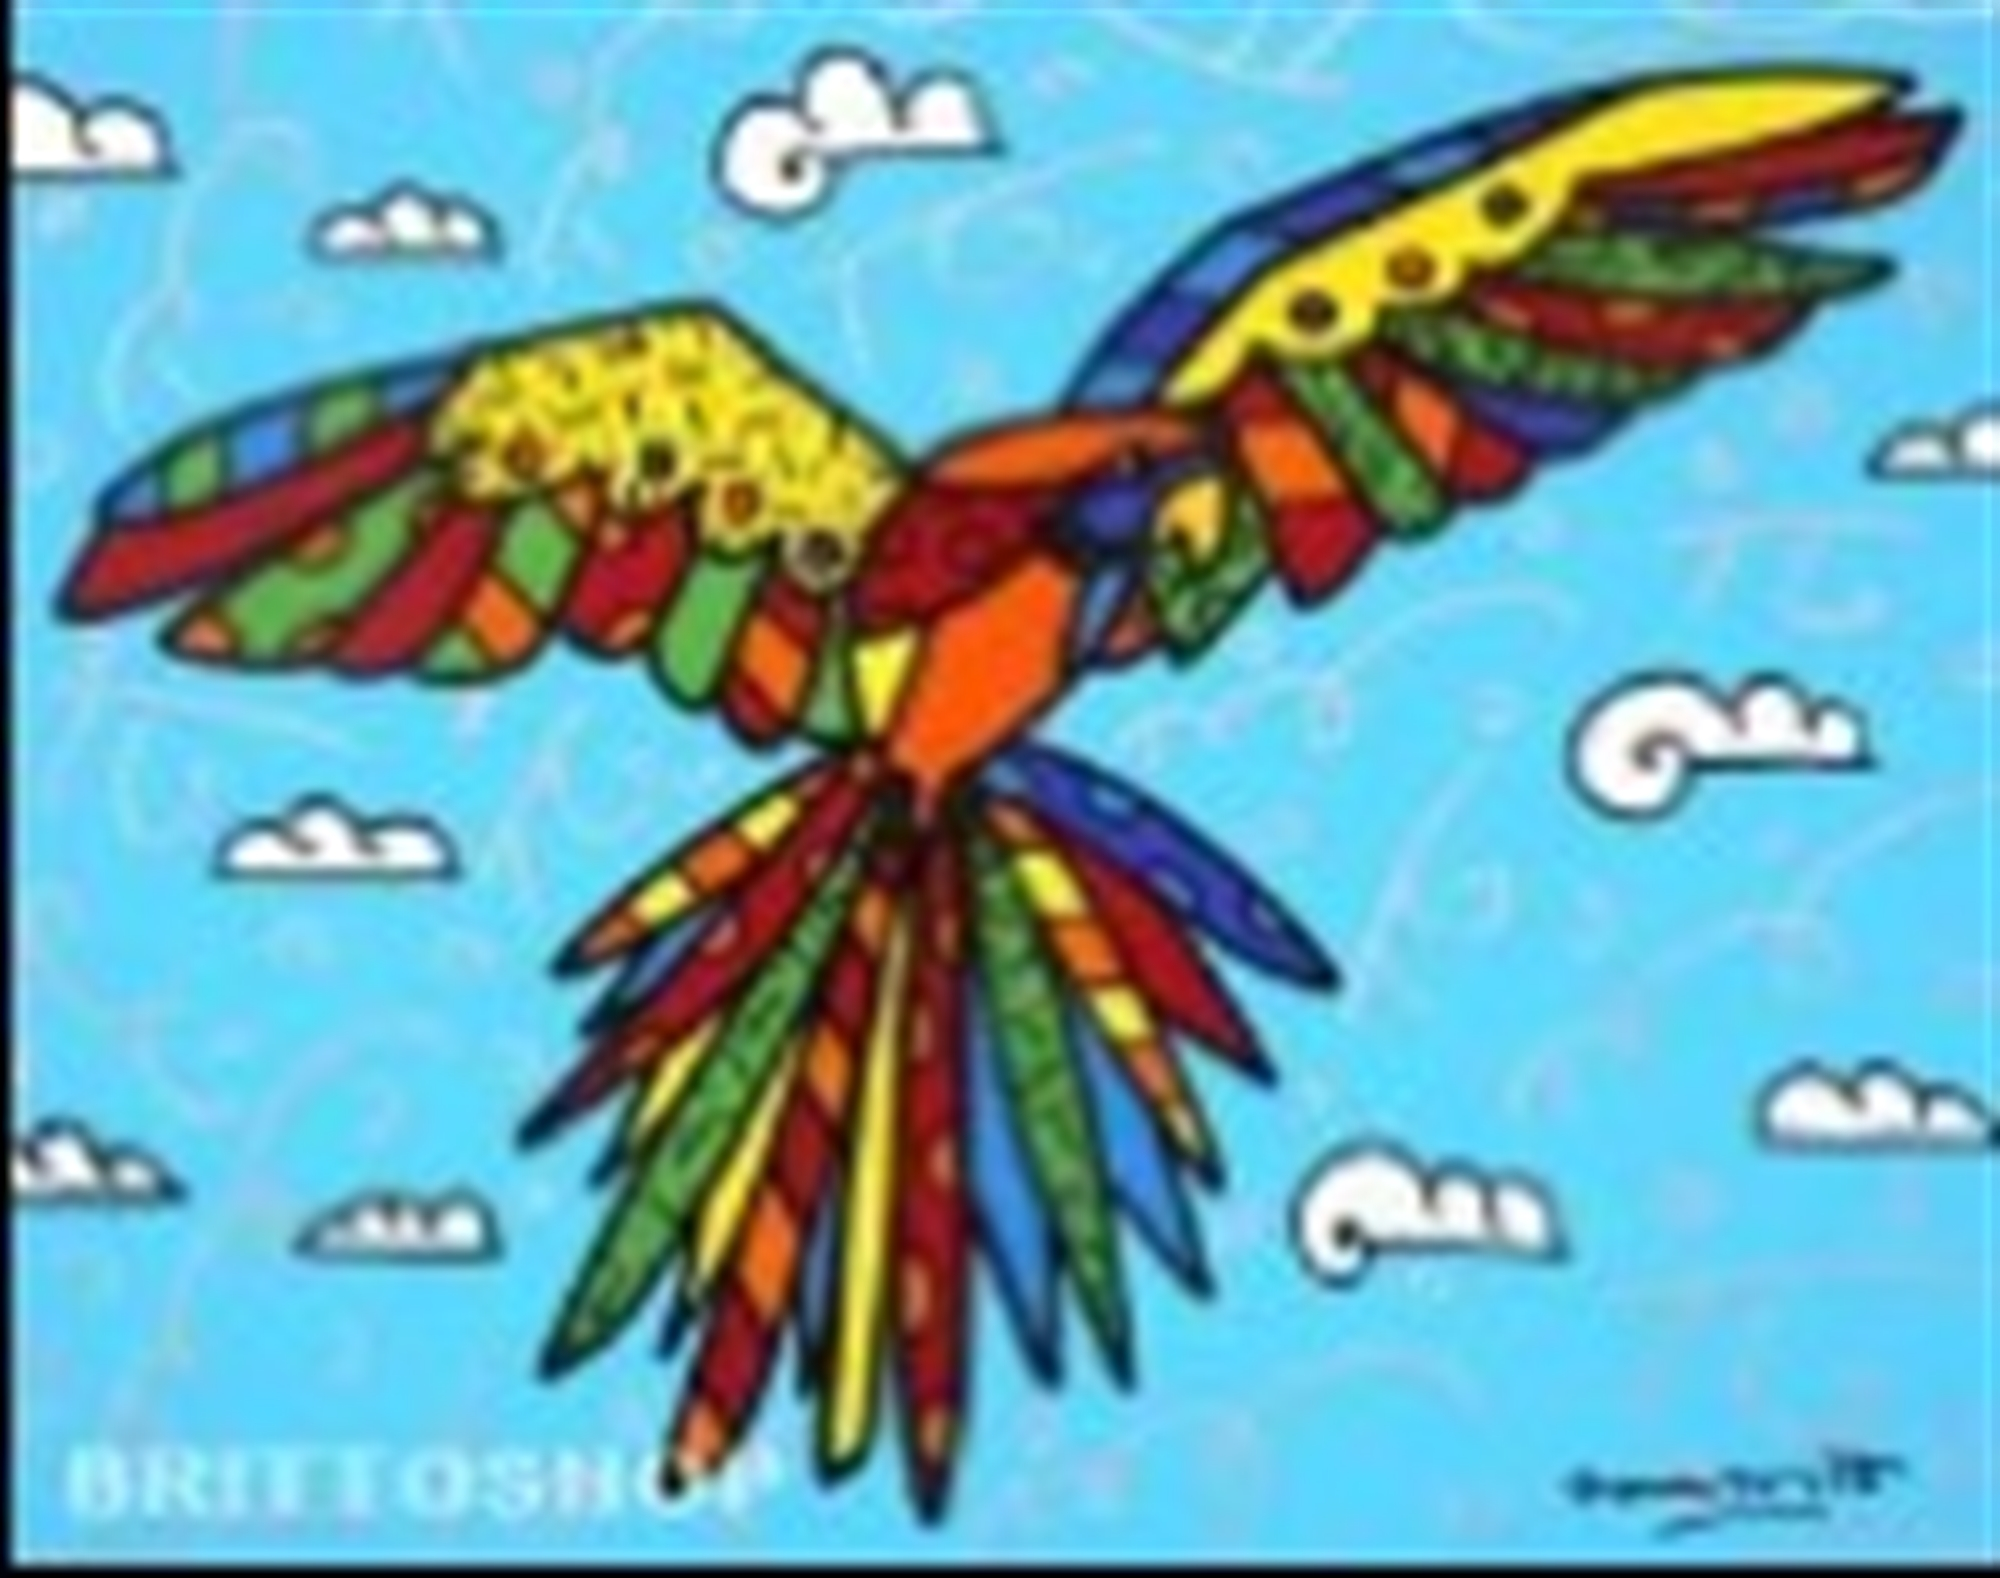 FLYING HIGH by Romero Britto